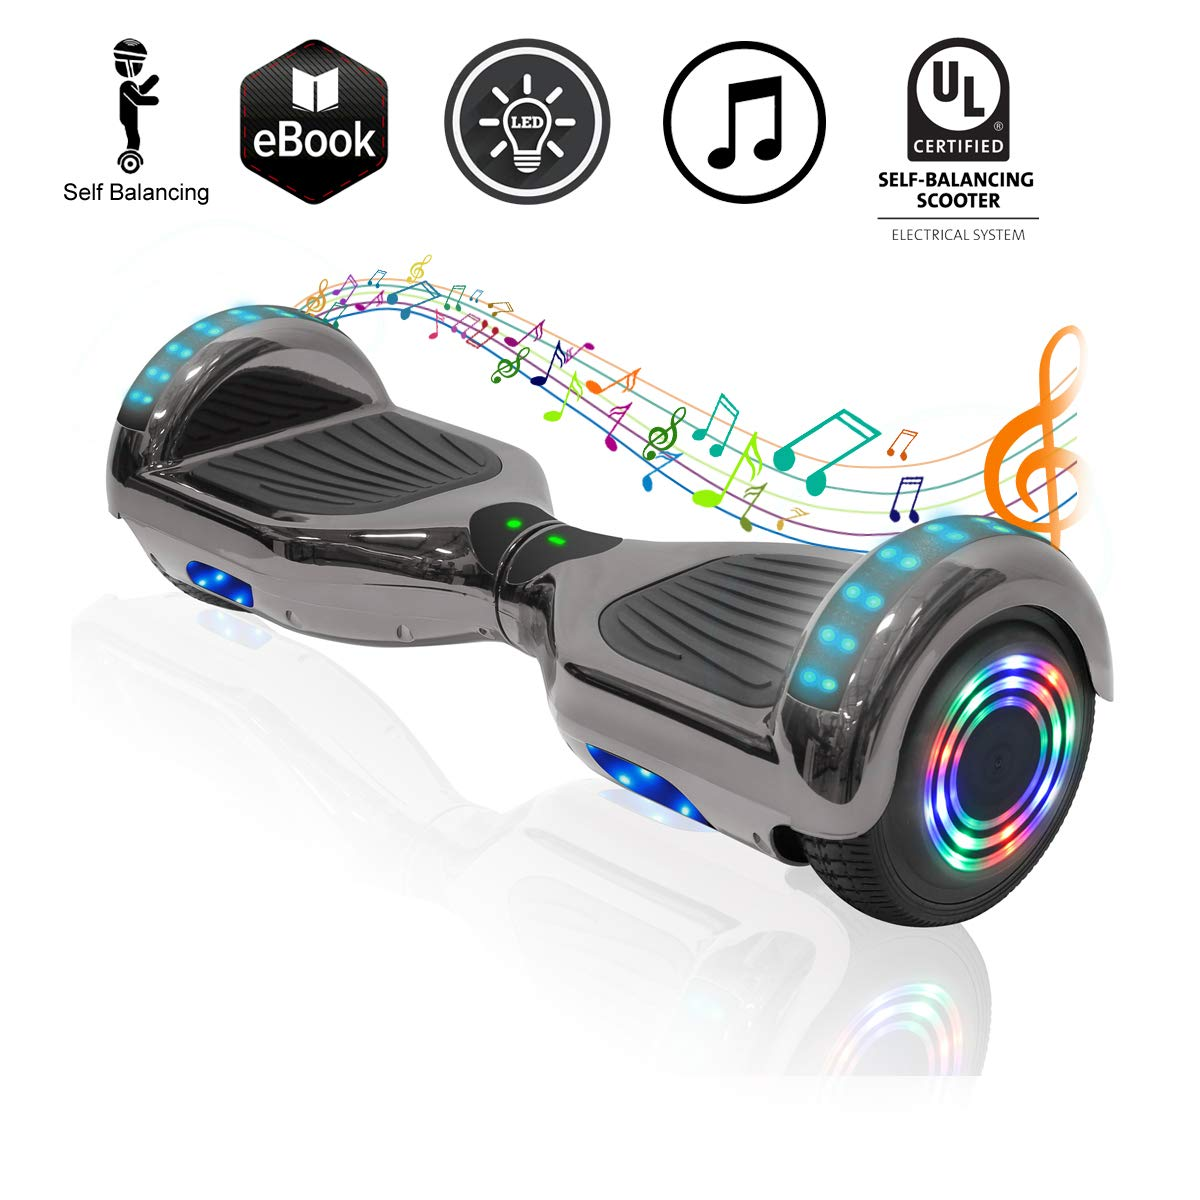 Hoverboard|Hover Board Ul2272 Certified Self Balancing Electric Scooter with Bluetooth&LED for Kids&Adult Cool&Fun 6.5 Chrome Surface Hoverboards Perfect Christmas|Birthday Gift (Chrome Black)